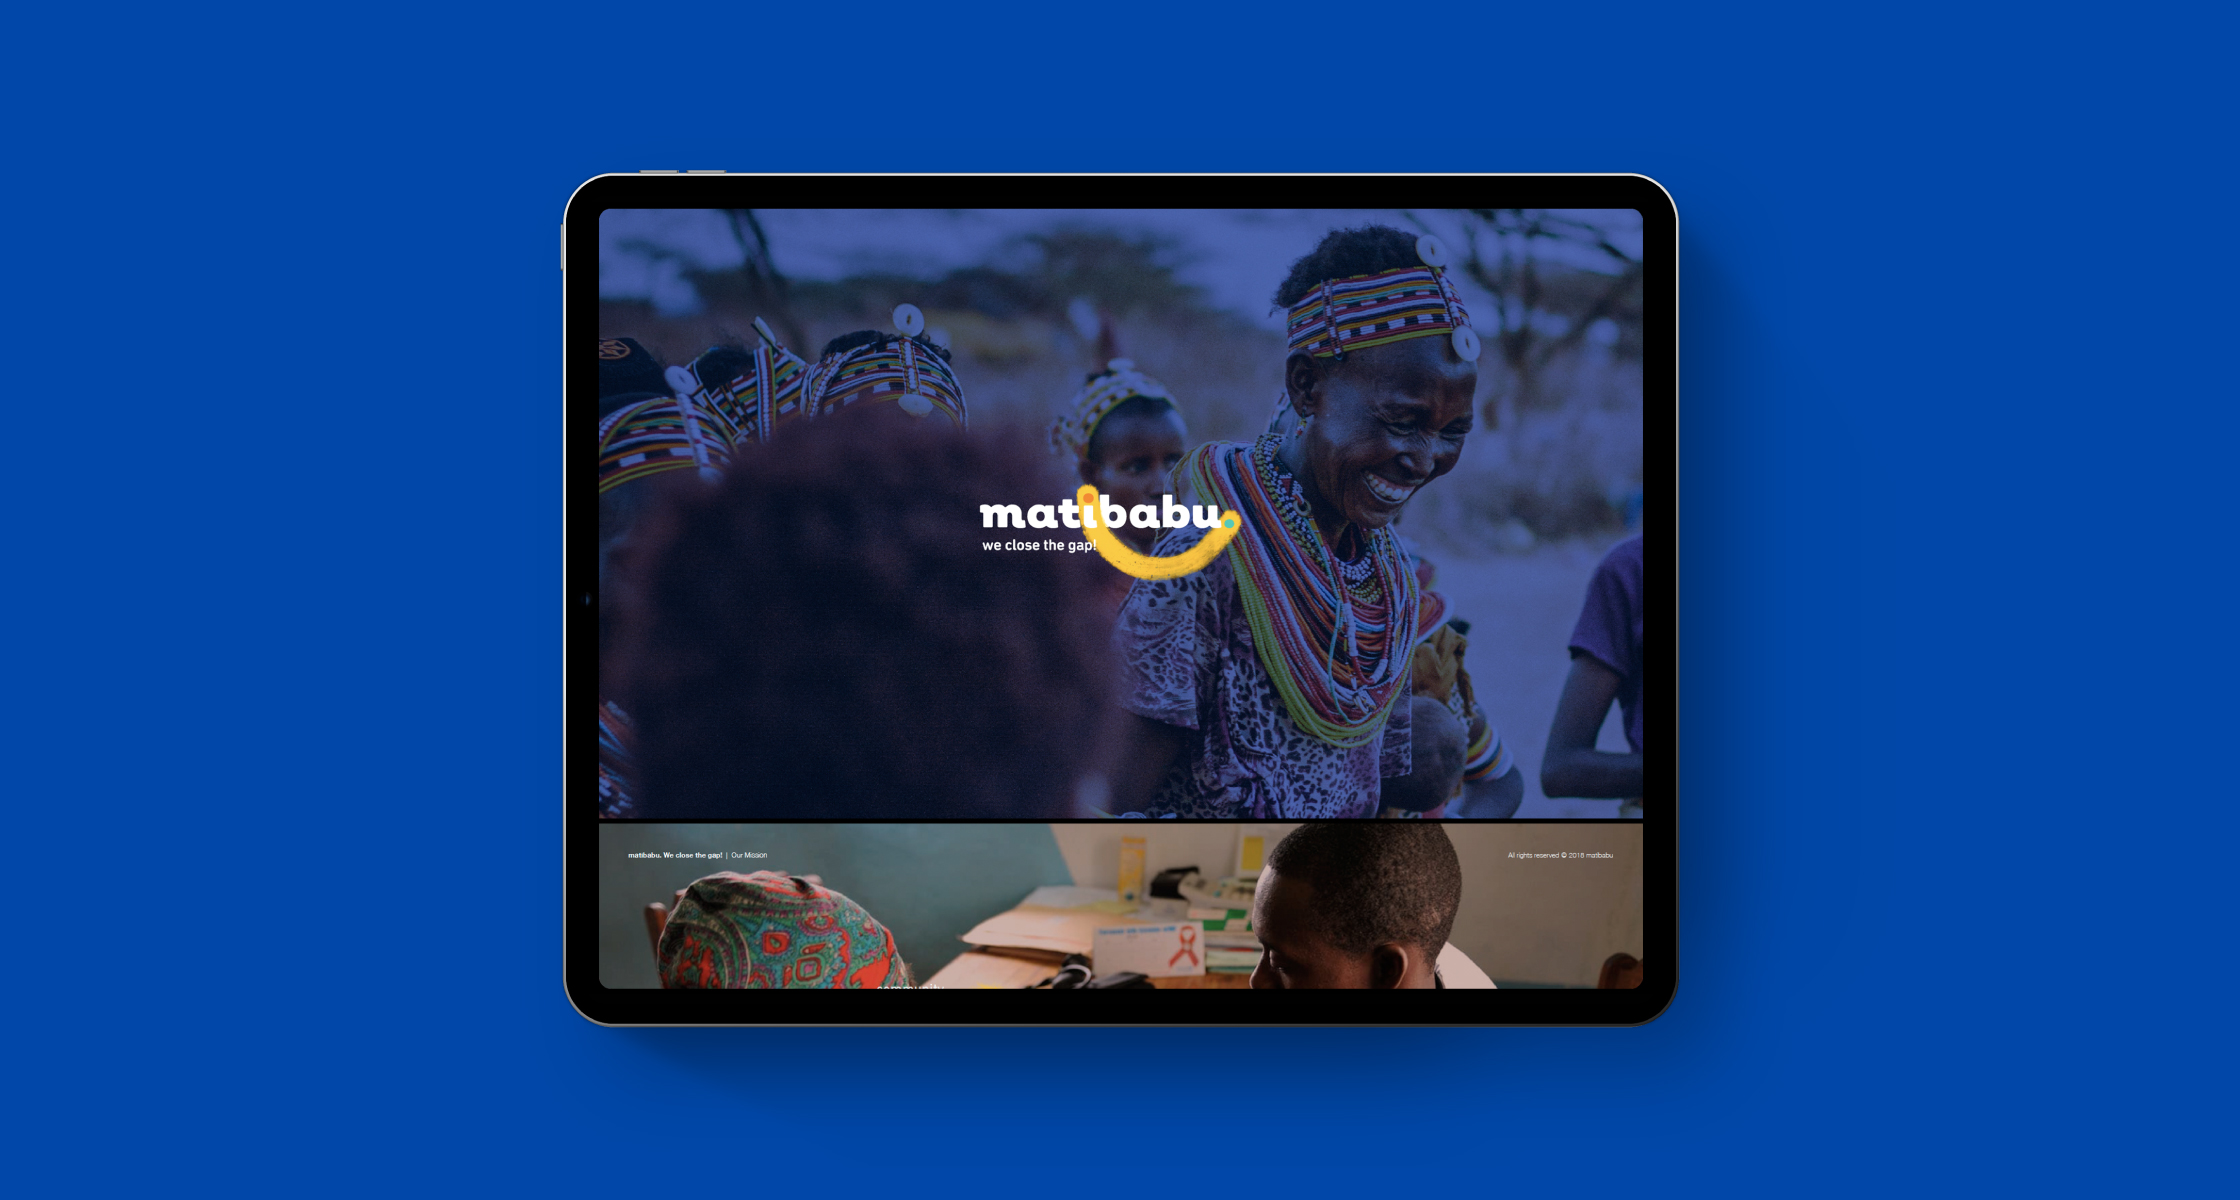 matibabu website mockup possibility - Possibility™ - Design a healthier and more sustainable future. -